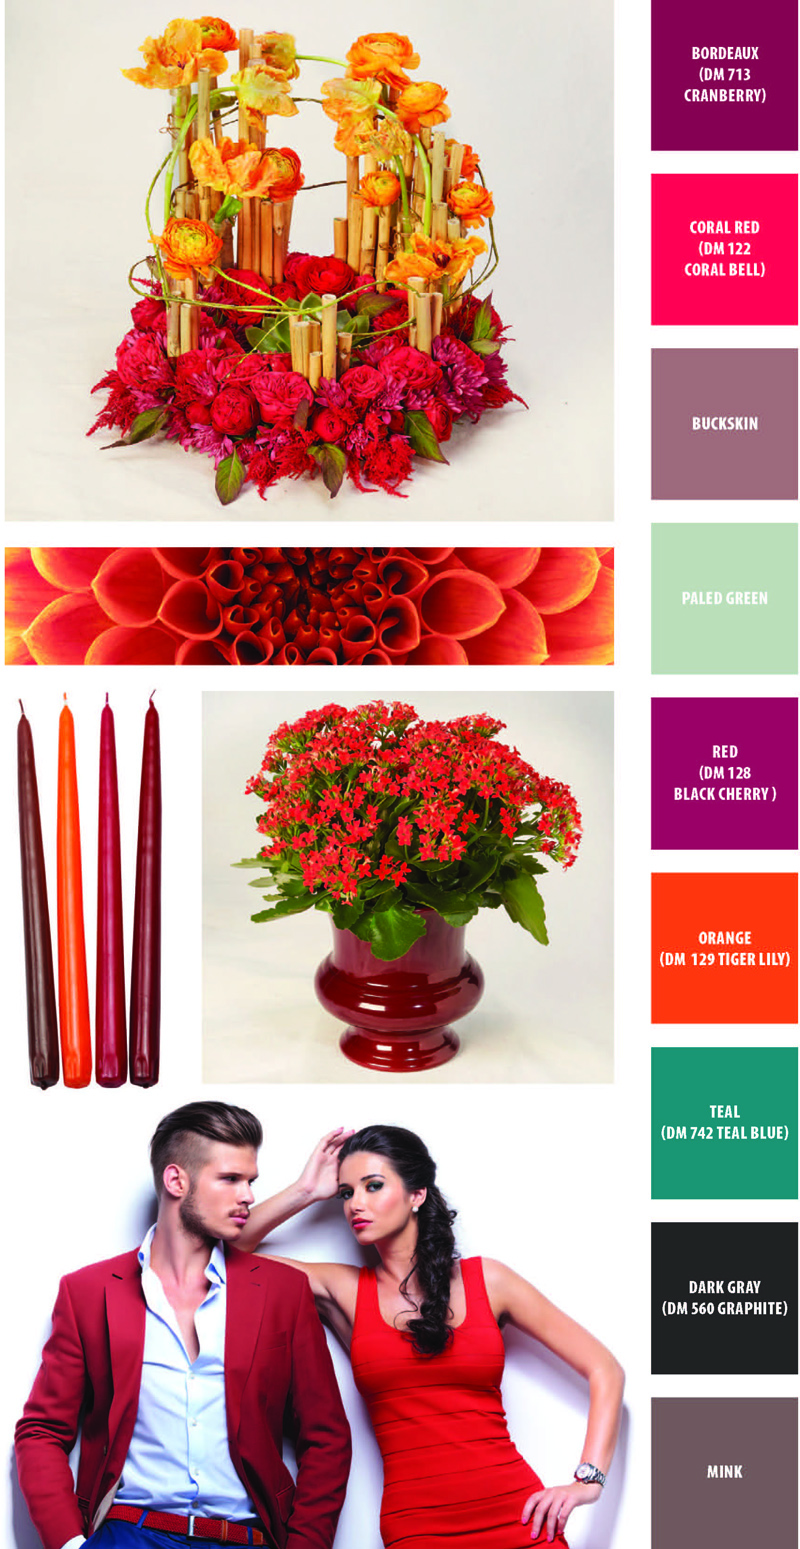 Hear Me Roar: Containers Flowers and Colors Bordeaux DM713 Cranberry, Coral Red DM122 Coral Bell, Buckskin, Paled Green, Red DM128 Black Cherry, Orange DM129 Tiger Lily, Teal DM724 Teal Blue, Dark Gray DM560 Graphite, Mink